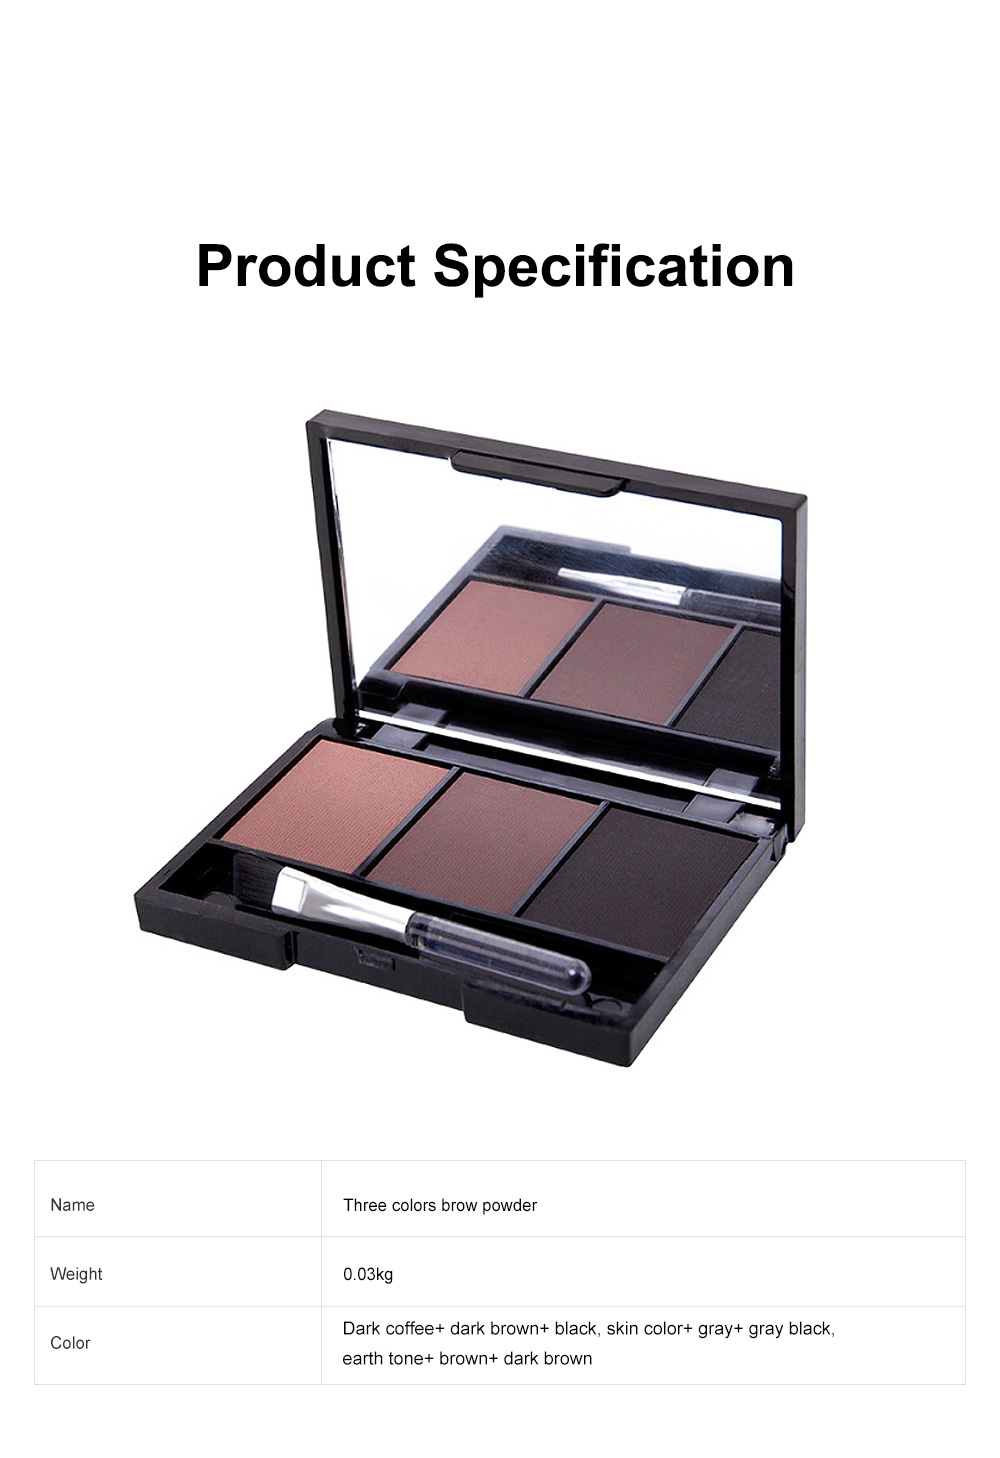 Delicate Fine Three Colors Brow Powder with Brush Mirror Enduring Easy Coloring Eyebrow Makeup Tool Accessories 6